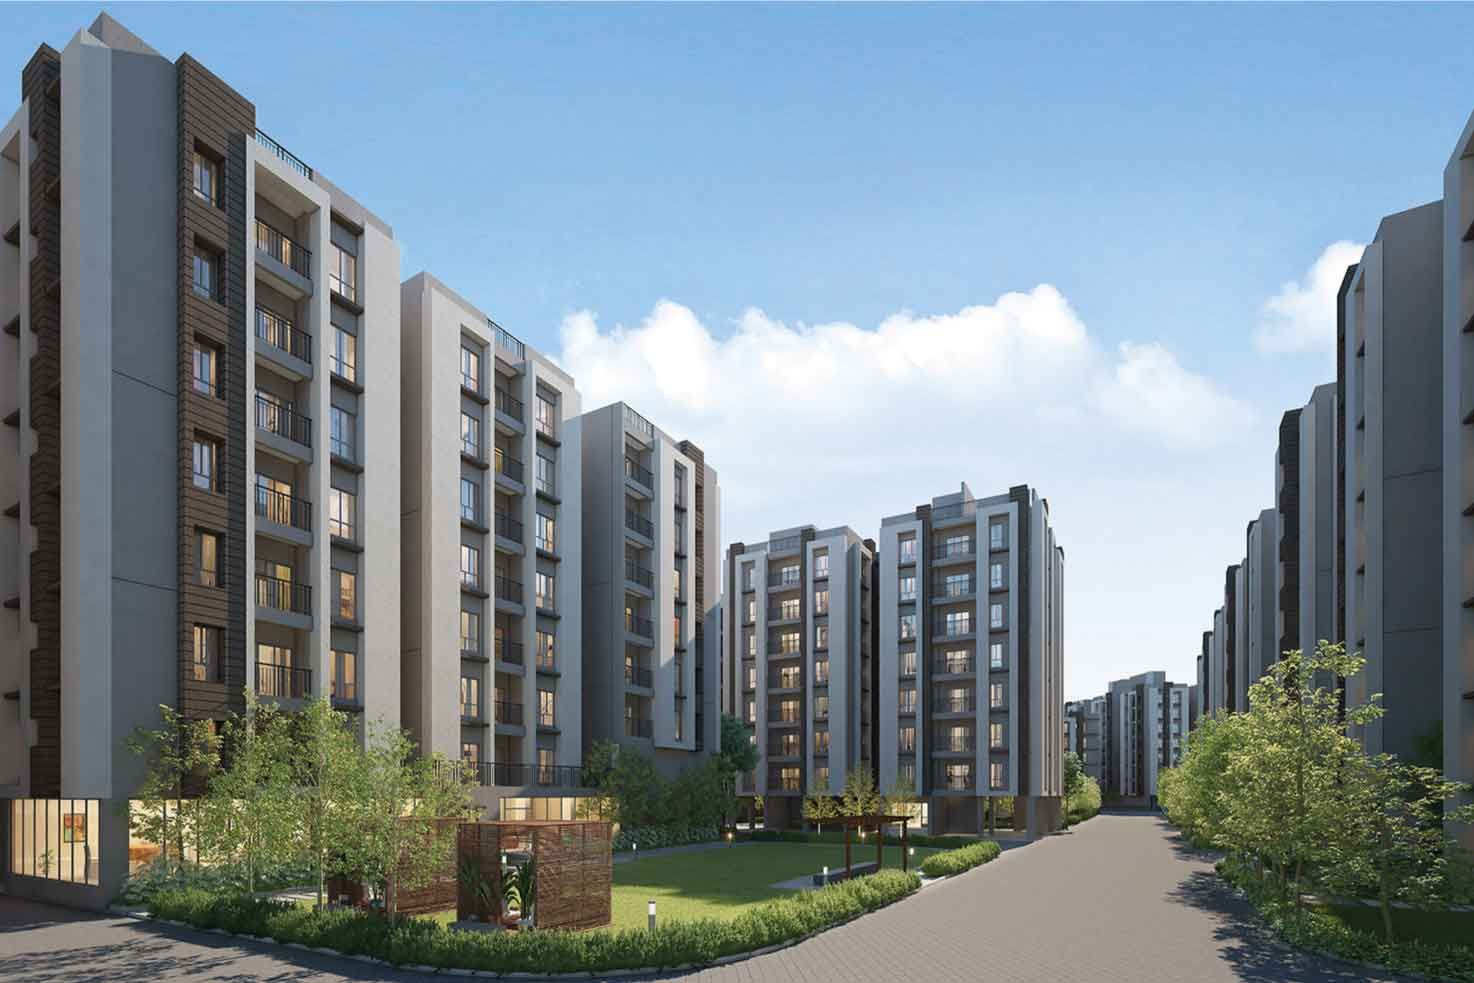 3 BHK Apartments in Madhyamgram